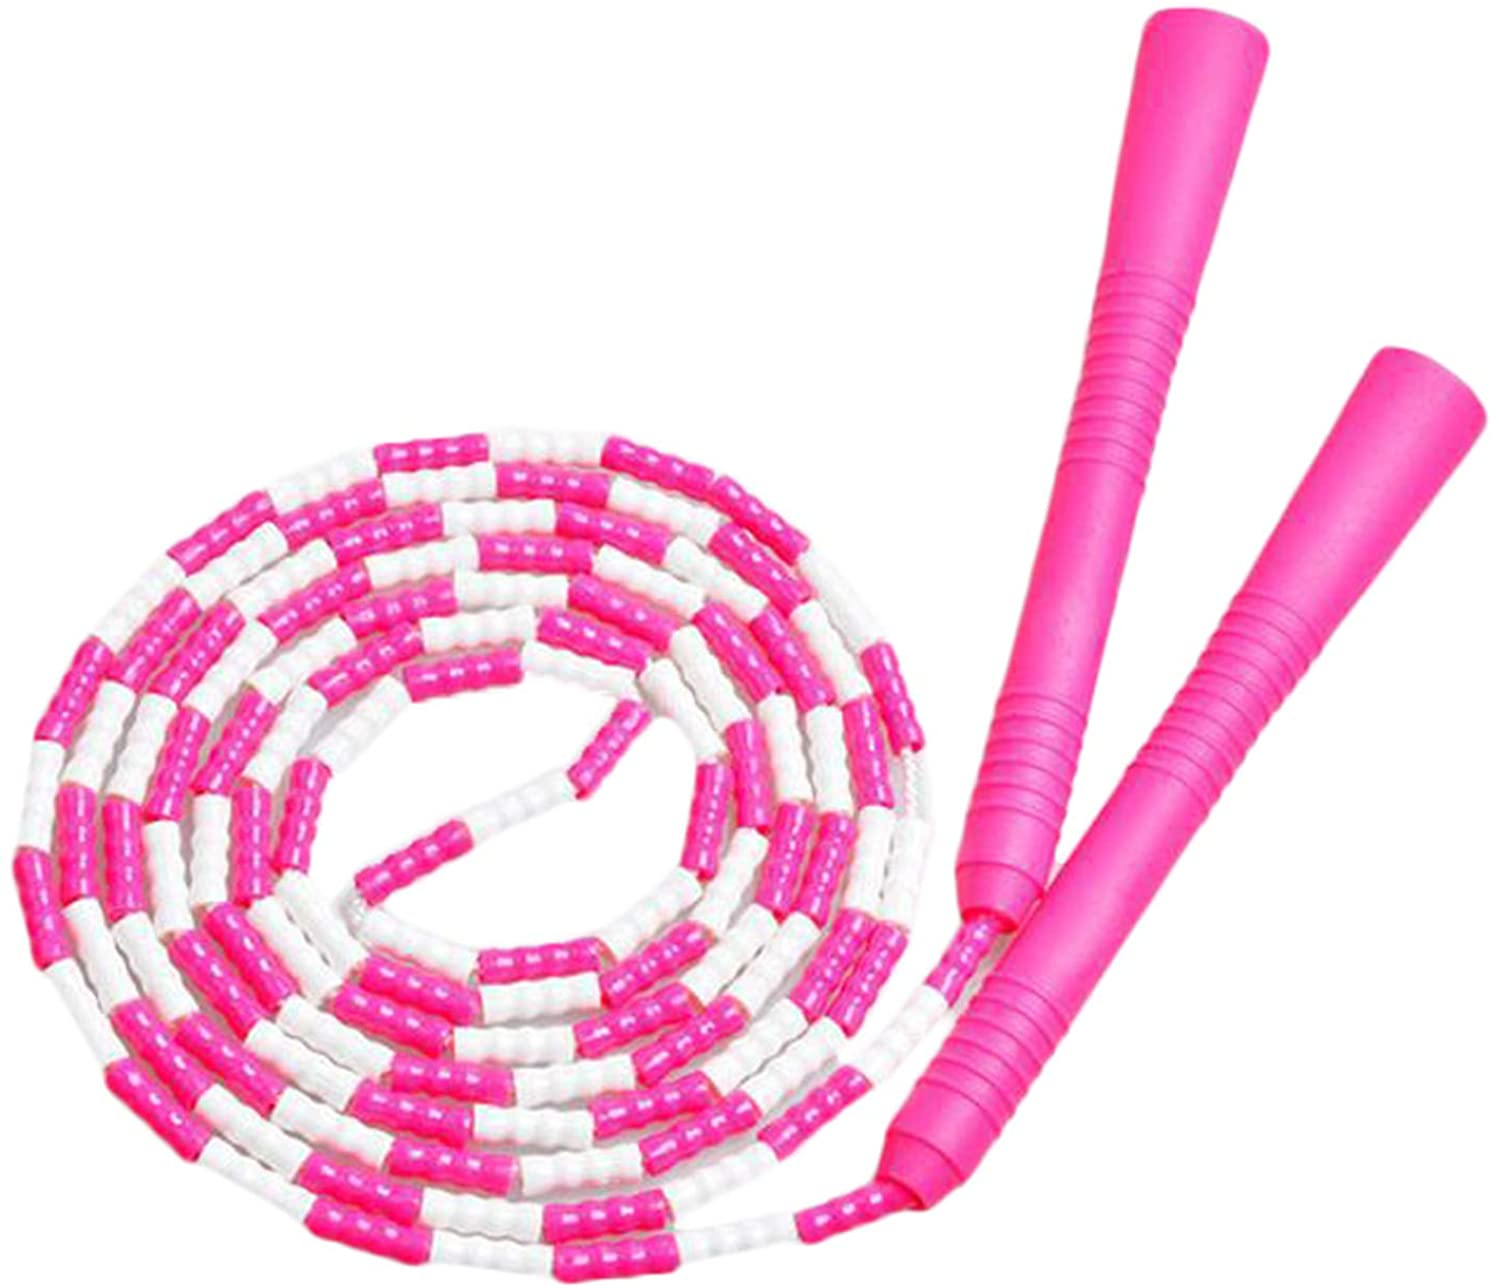 Soluo Jump Rope, Soft Beaded Jump Rope for Keeping Fit,Training,Workout and Weight Loss for Men Women Kids Ideal